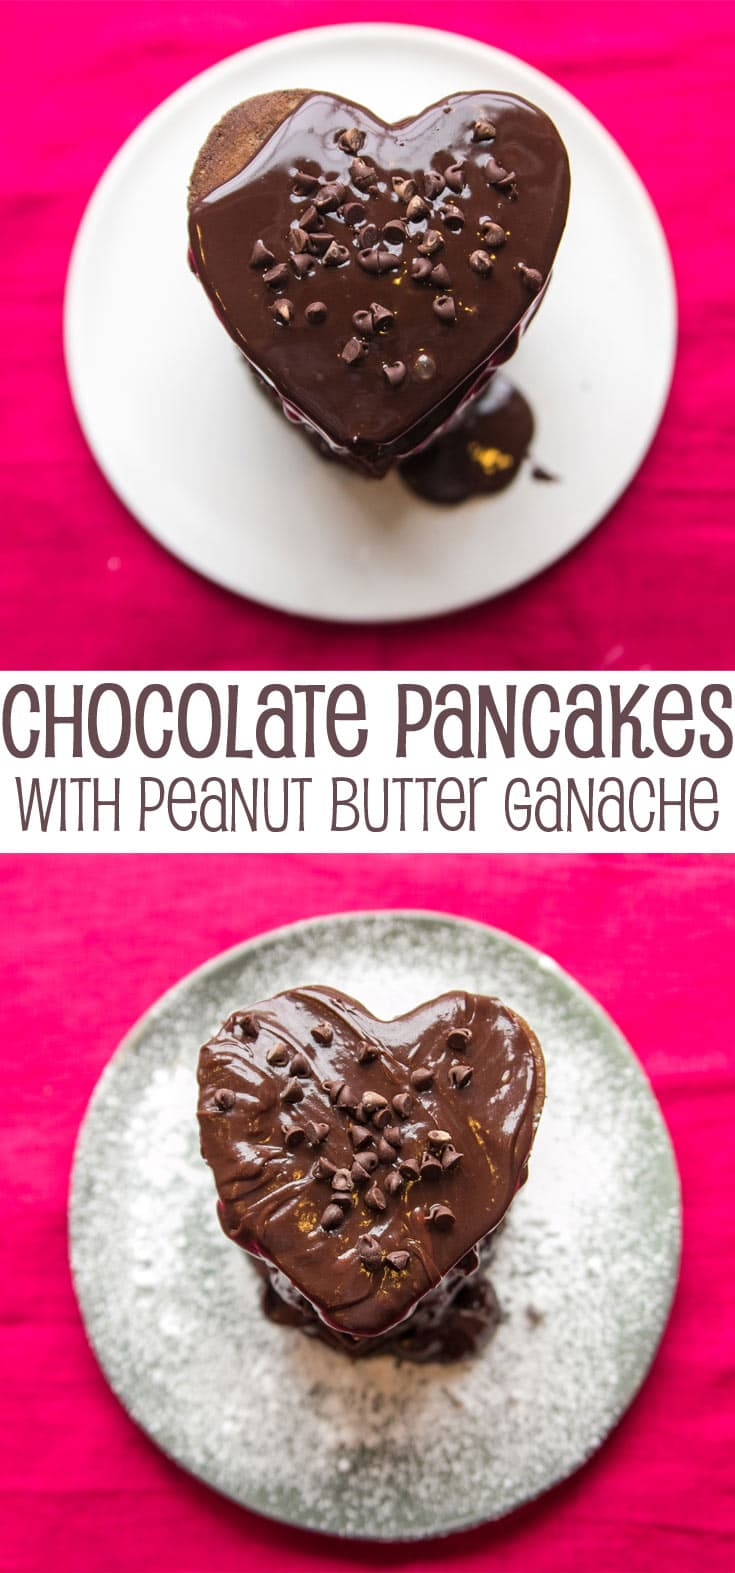 Chocolate Pancakes with Peanut Butter Ganache: Show someone you love them with this decadent breakfast. {Bunsen Burner Bakery}